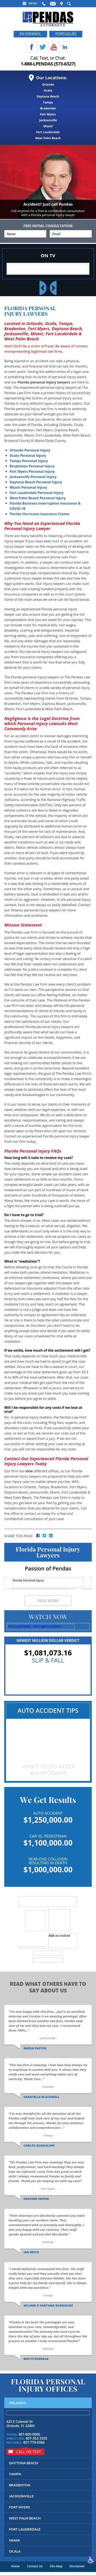 The Pendas Law Firm - Orlando FL Lawyers